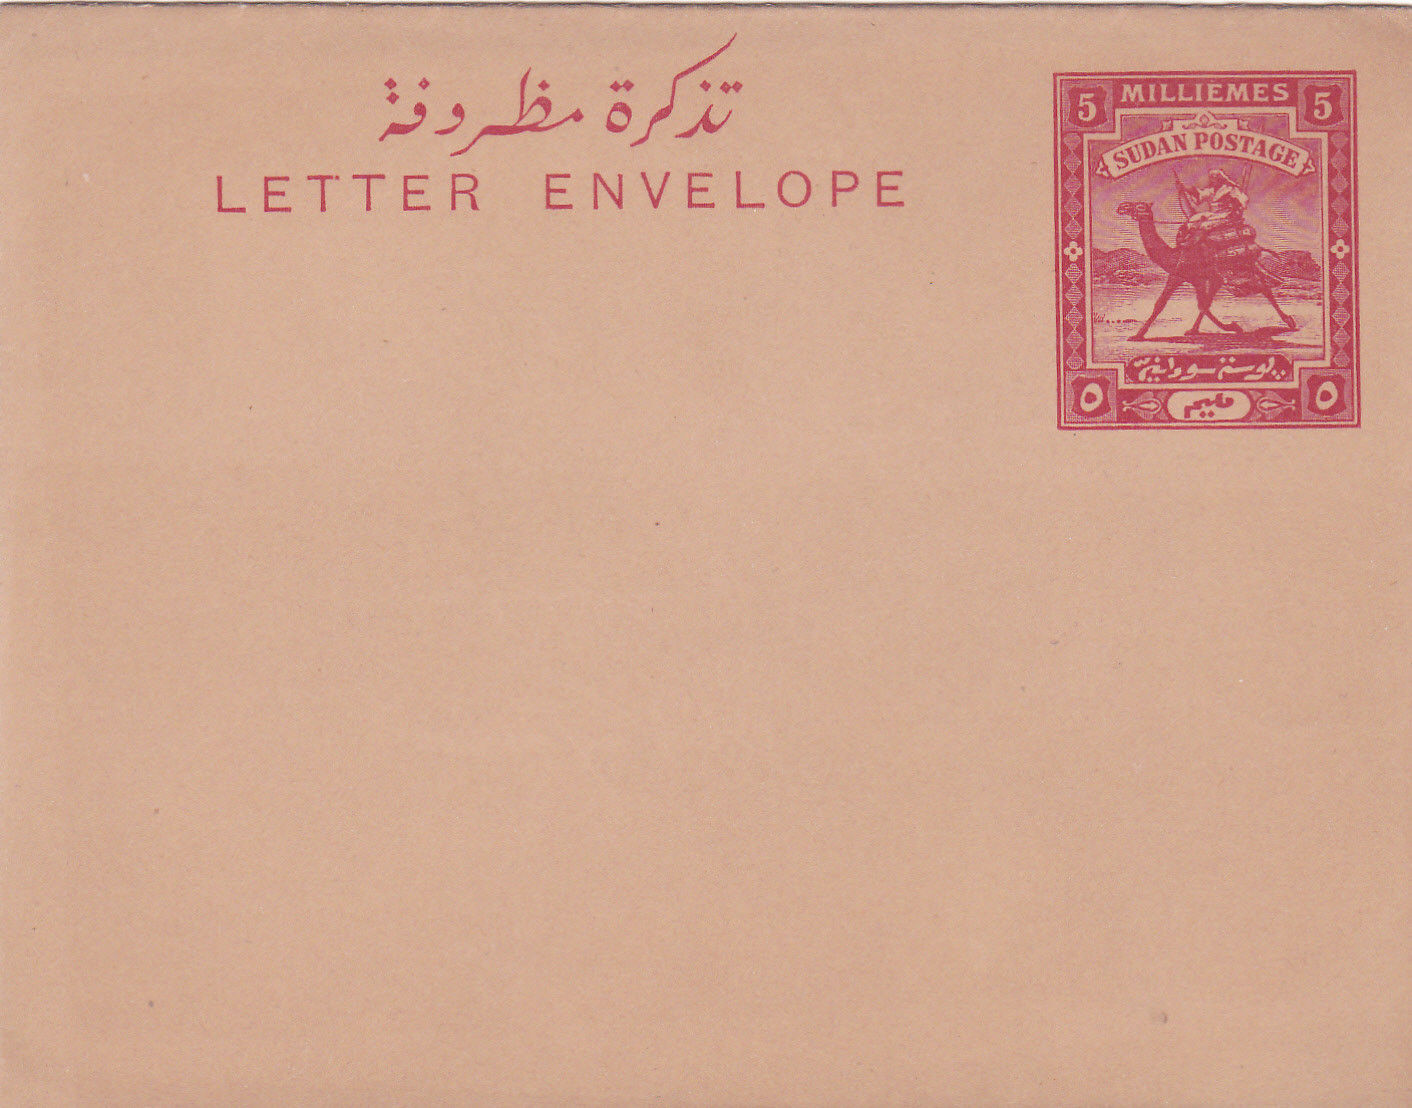 Sudan 5--millieme letter envelope featuring the Camel Postman design